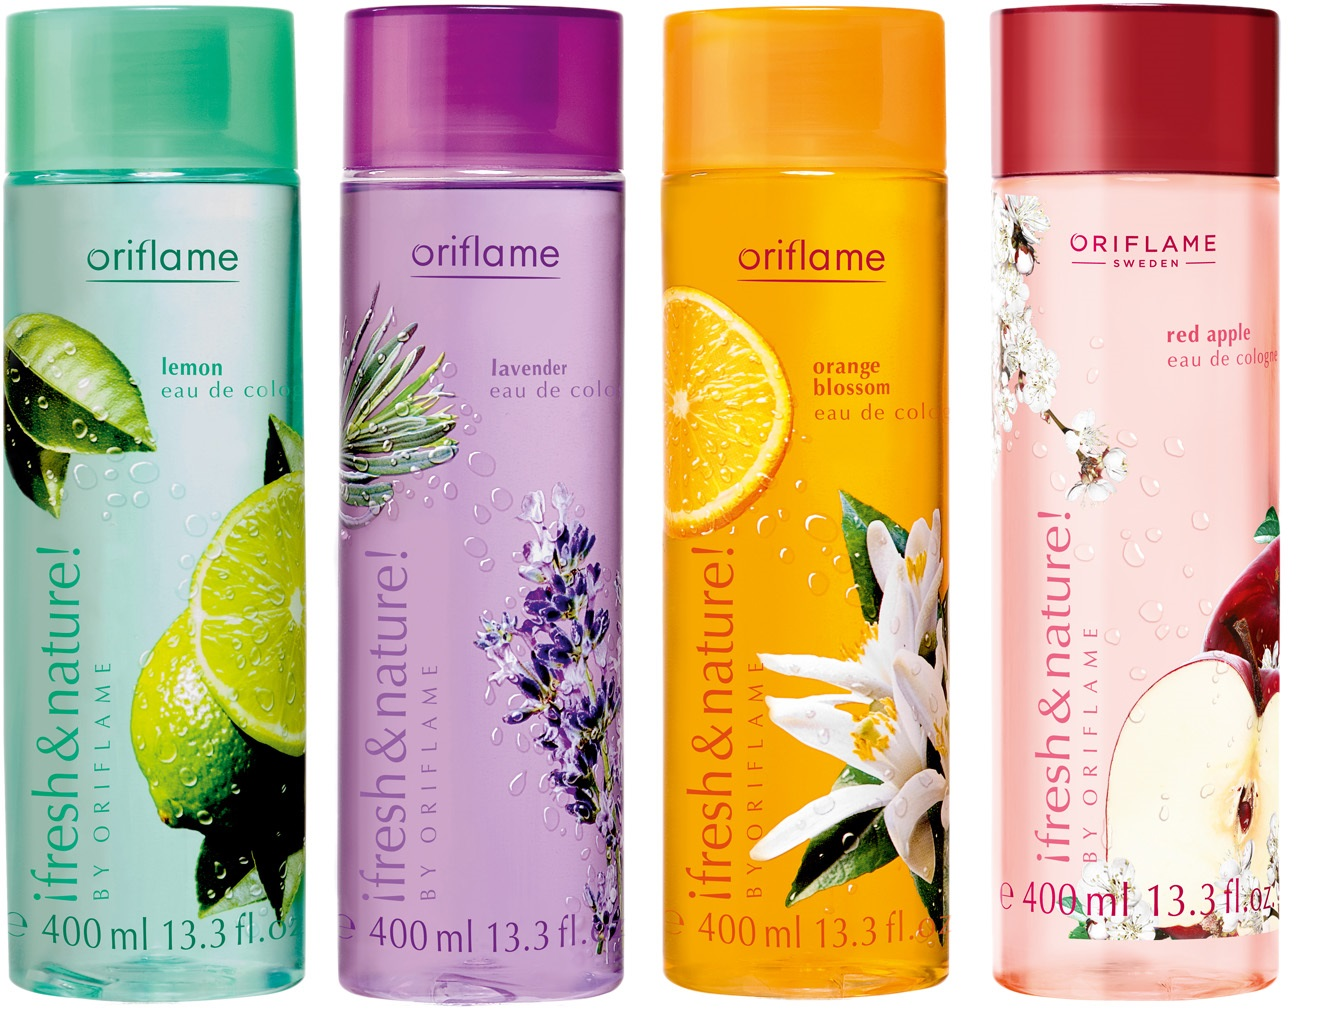 Oriflame - Oriflame Fresh & Nature! Eau de Cologne Review